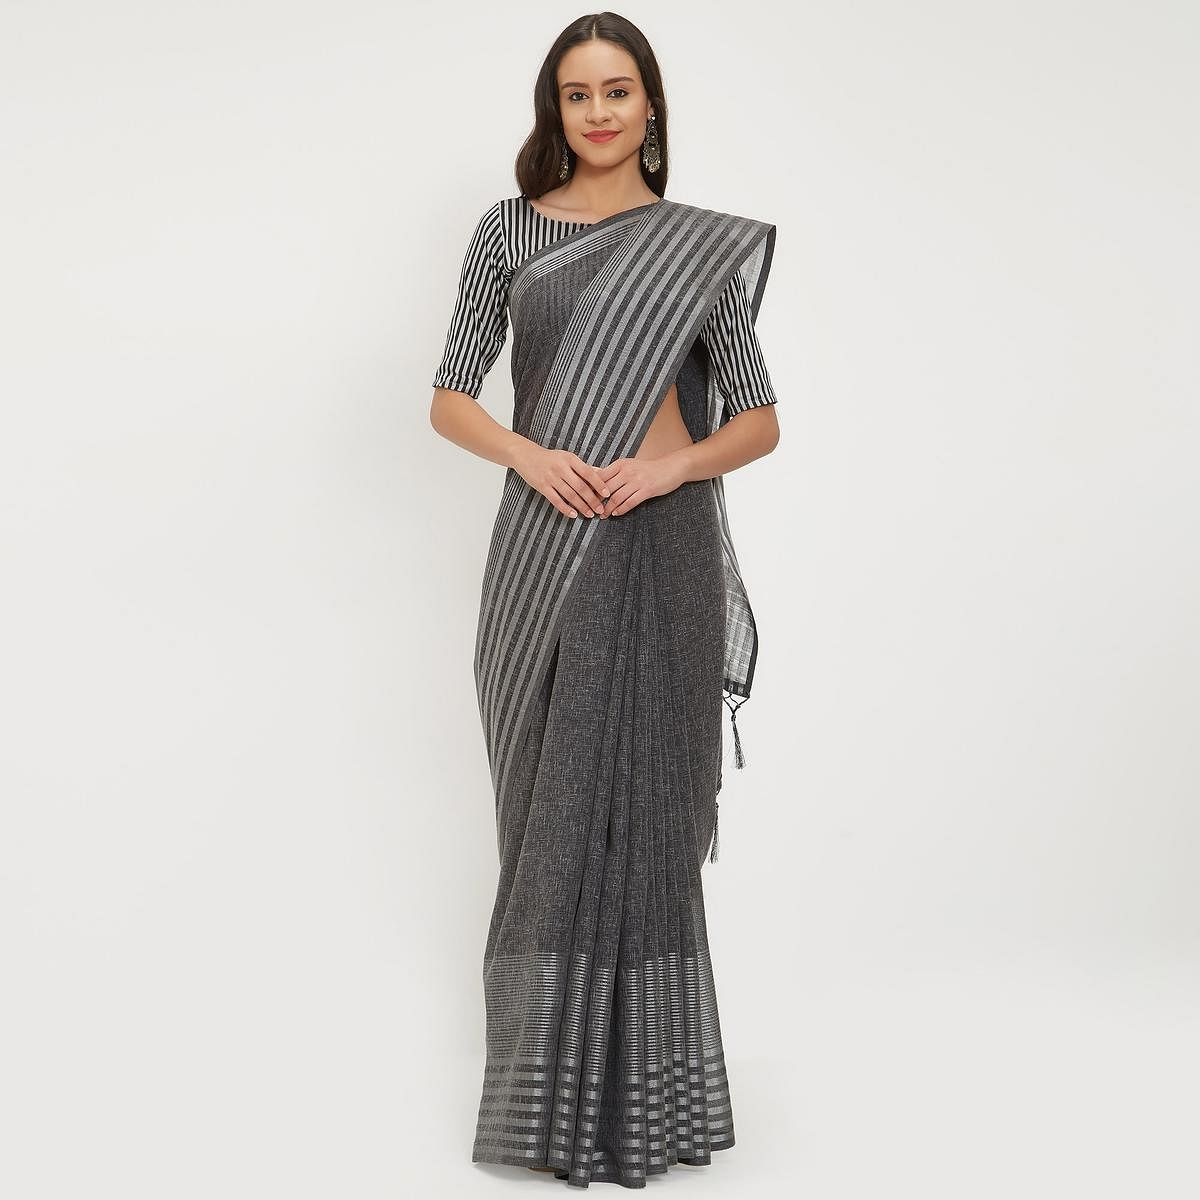 Ideal Dark Gray Colored Casual Wear Linen Saree With 2 Blouse Pieces